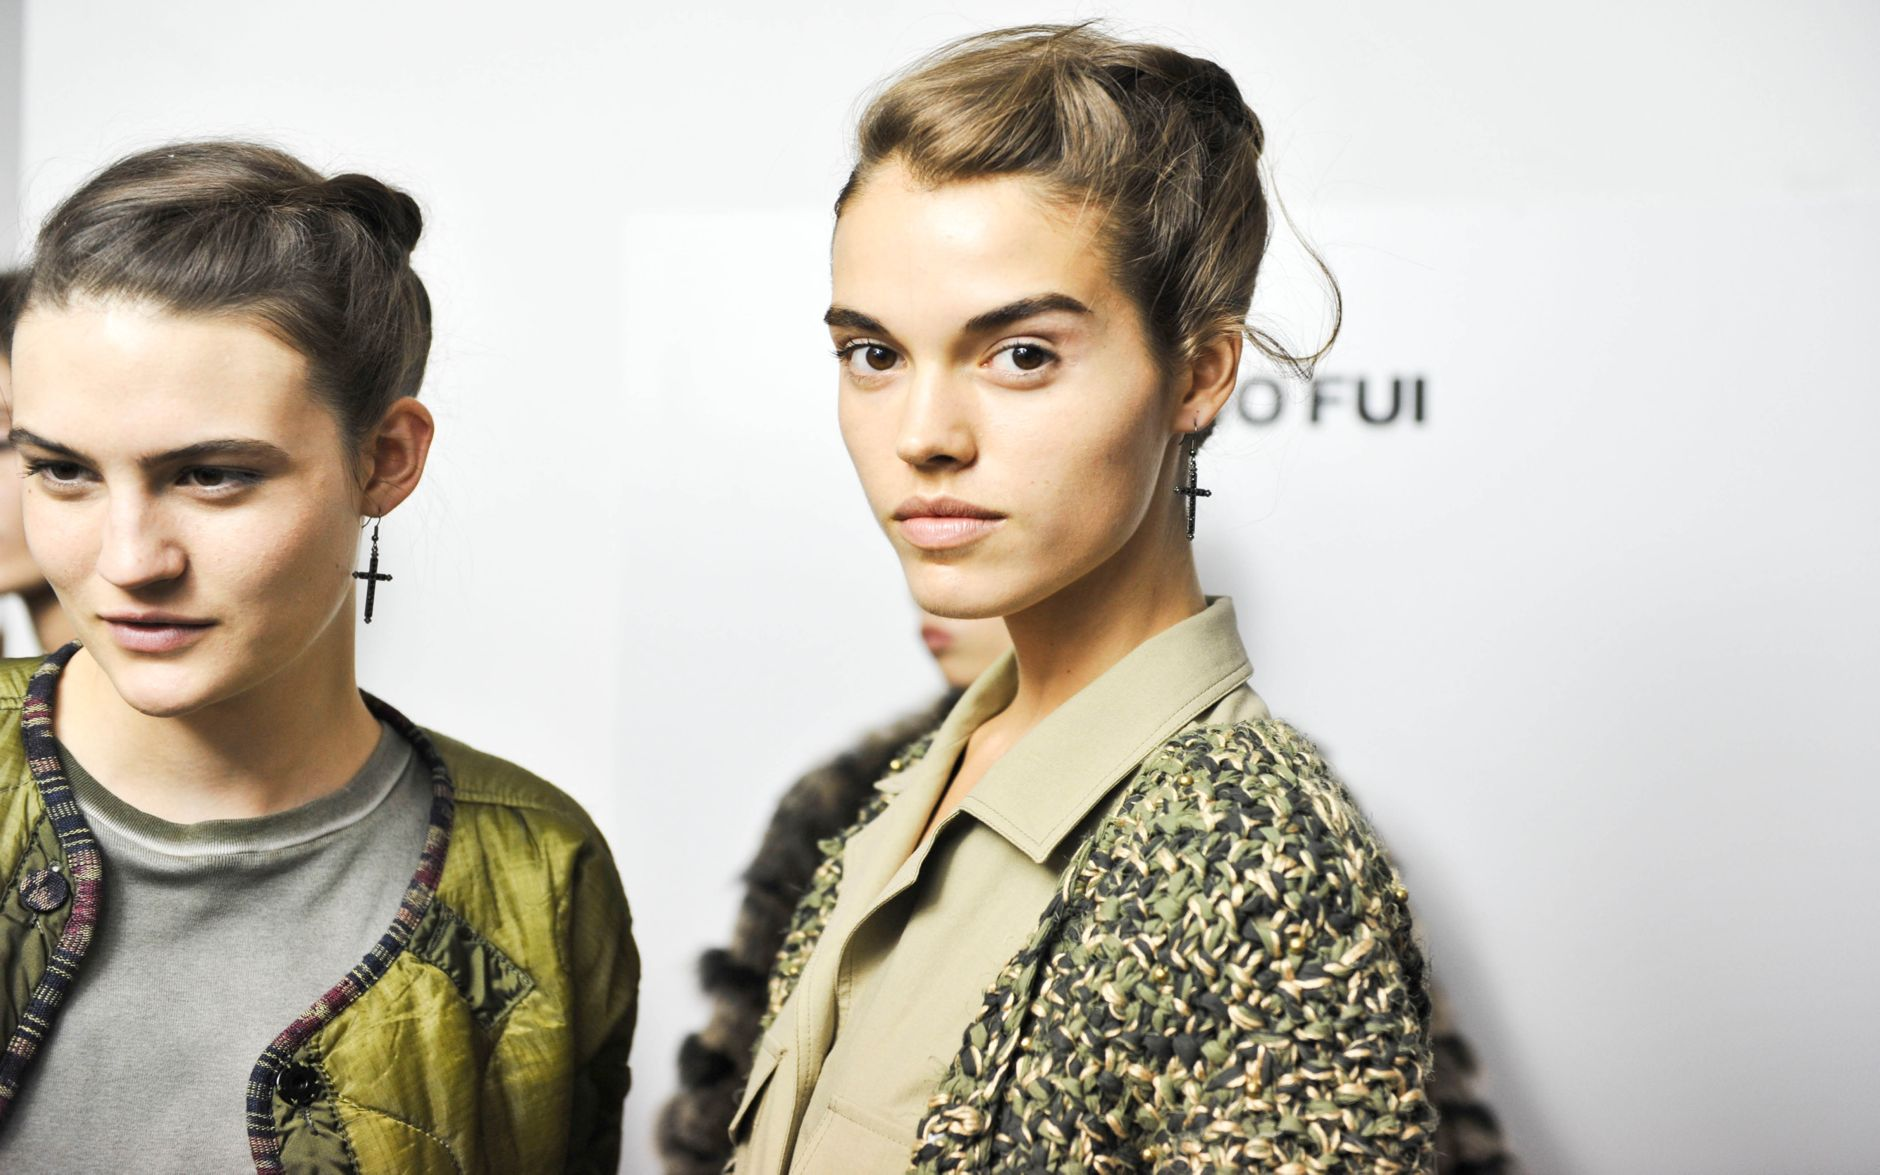 Jo No Fui Backstage SS 2013 Milano Fashion Week